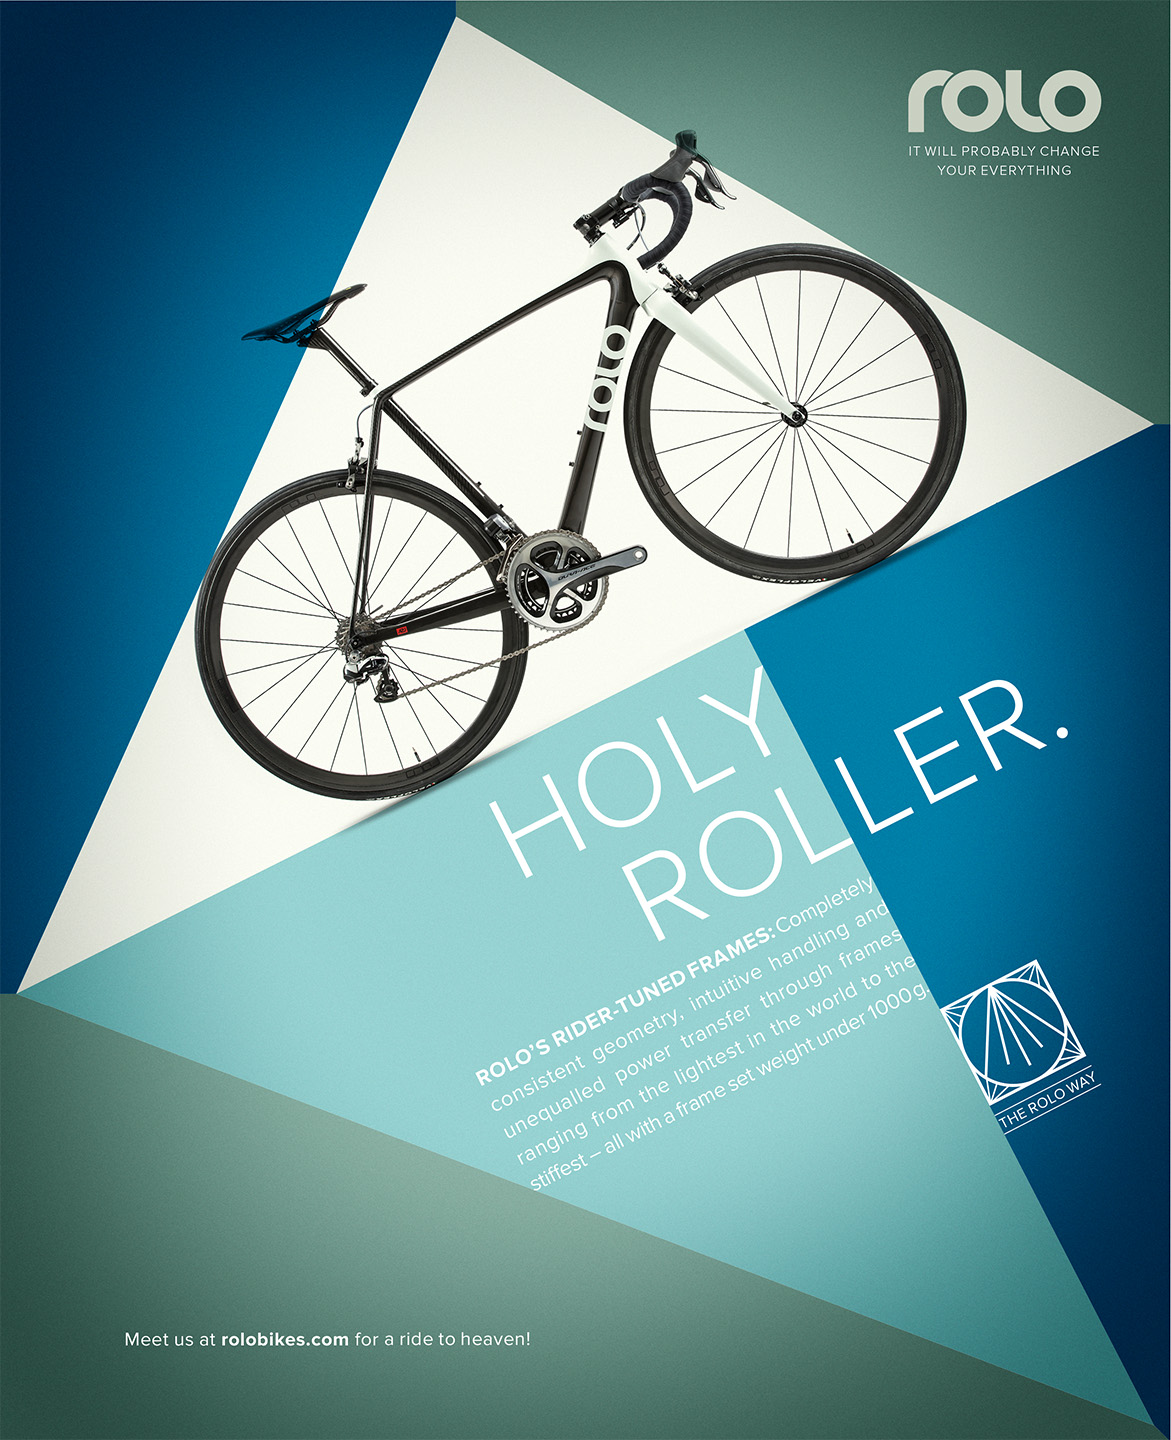 Rolo_AD_Rouleur_Final_Background